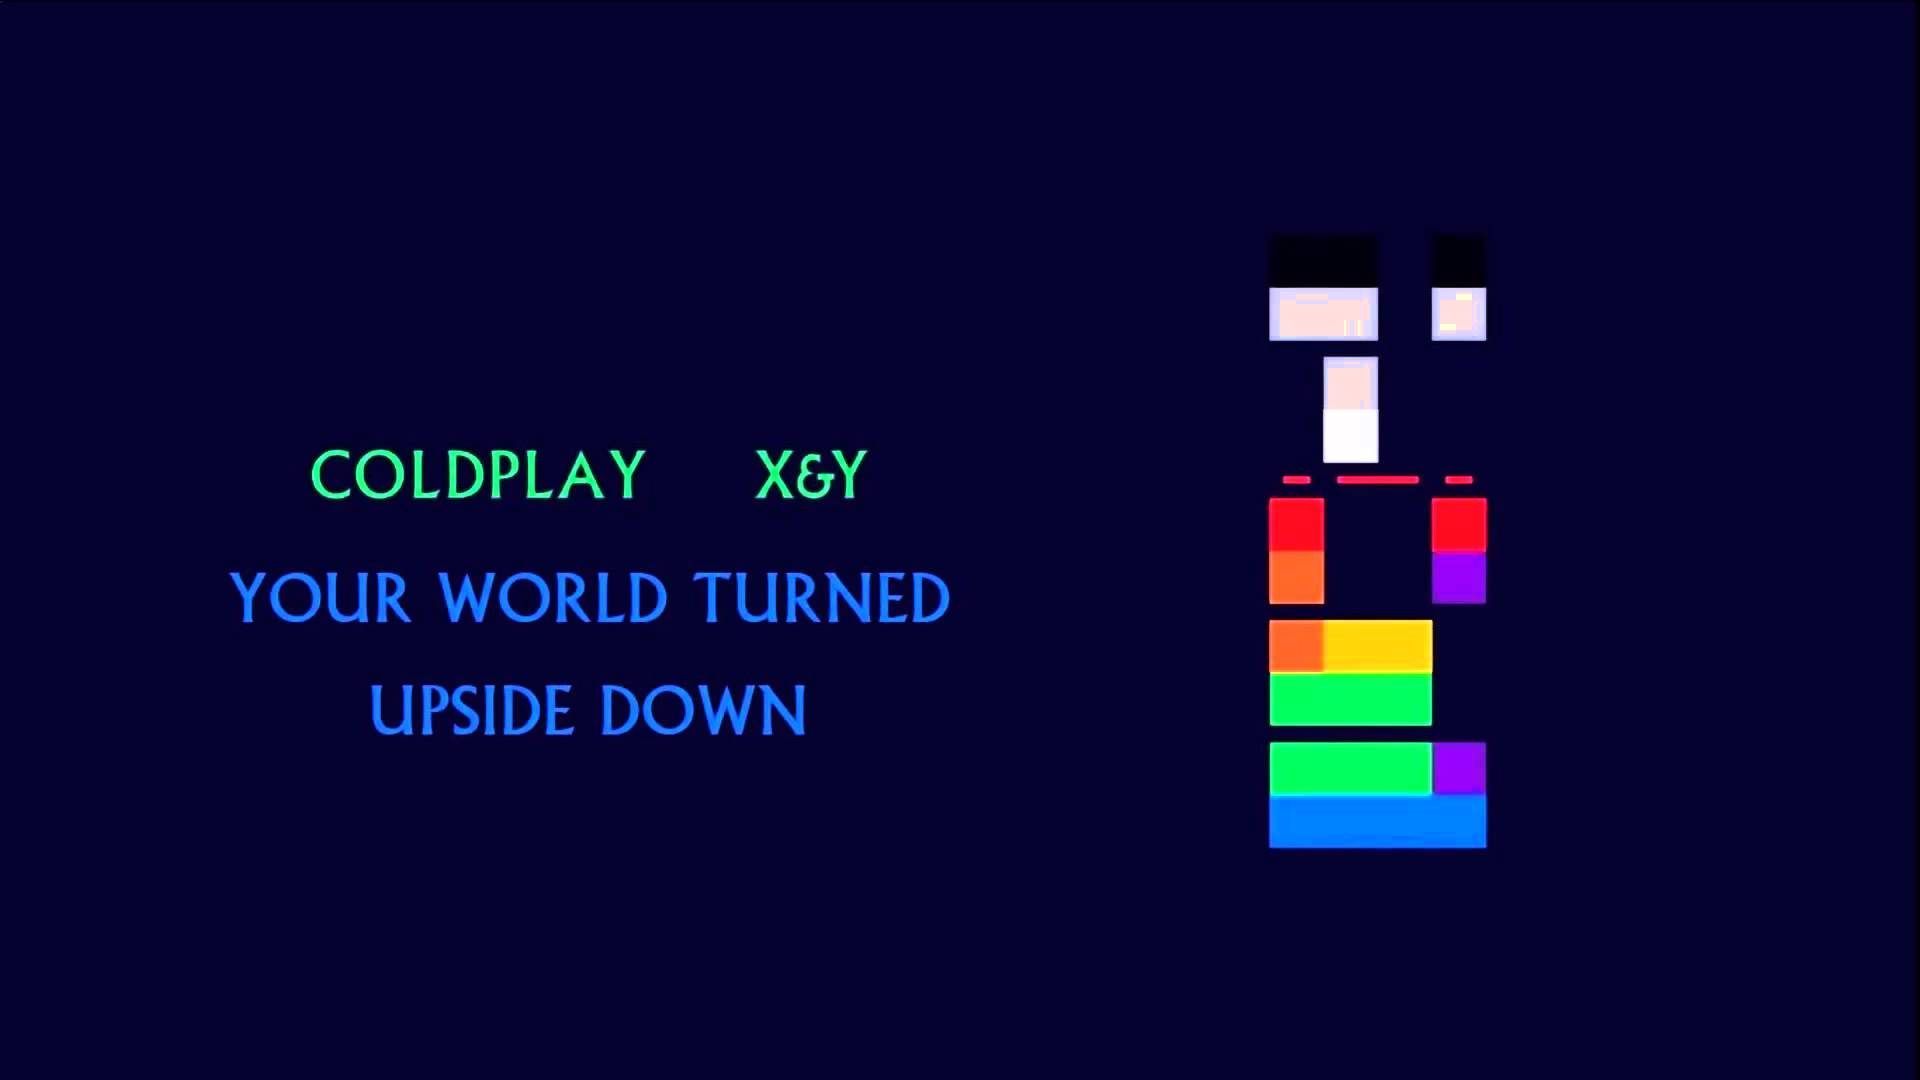 Coldplay - Your World Turned Upside Down (X&Y) - YouTube